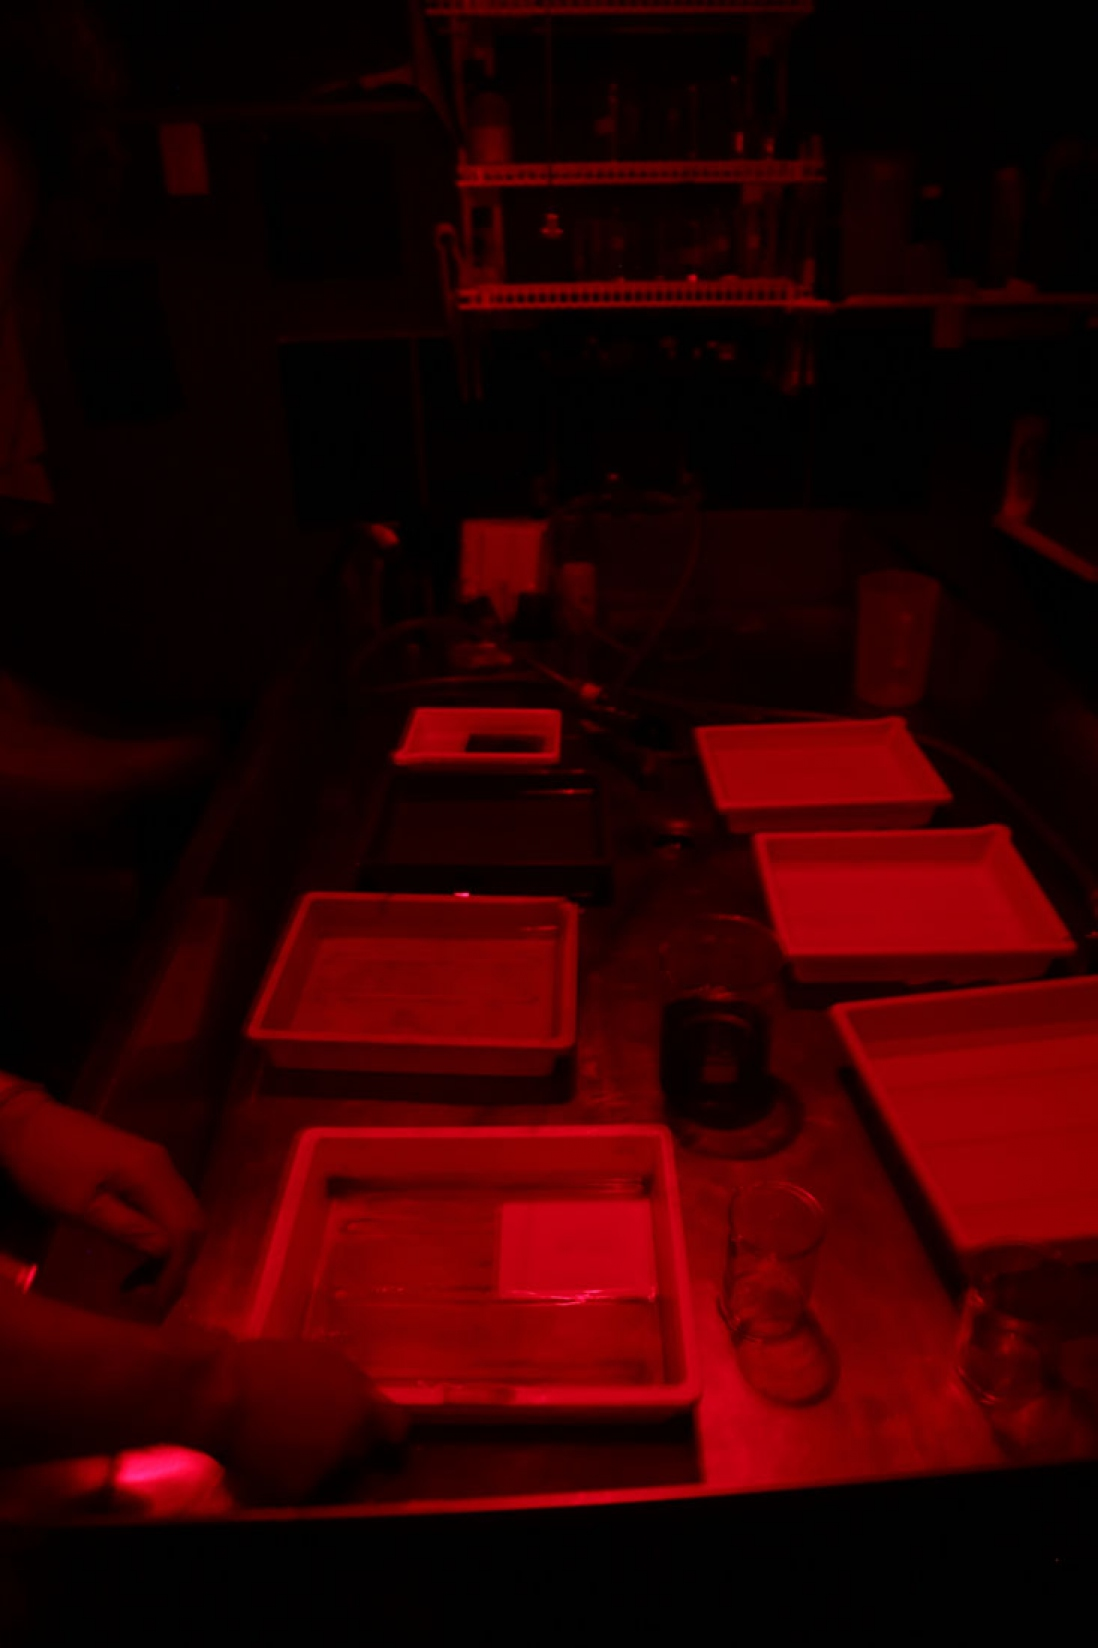 Red light over rows of trays.